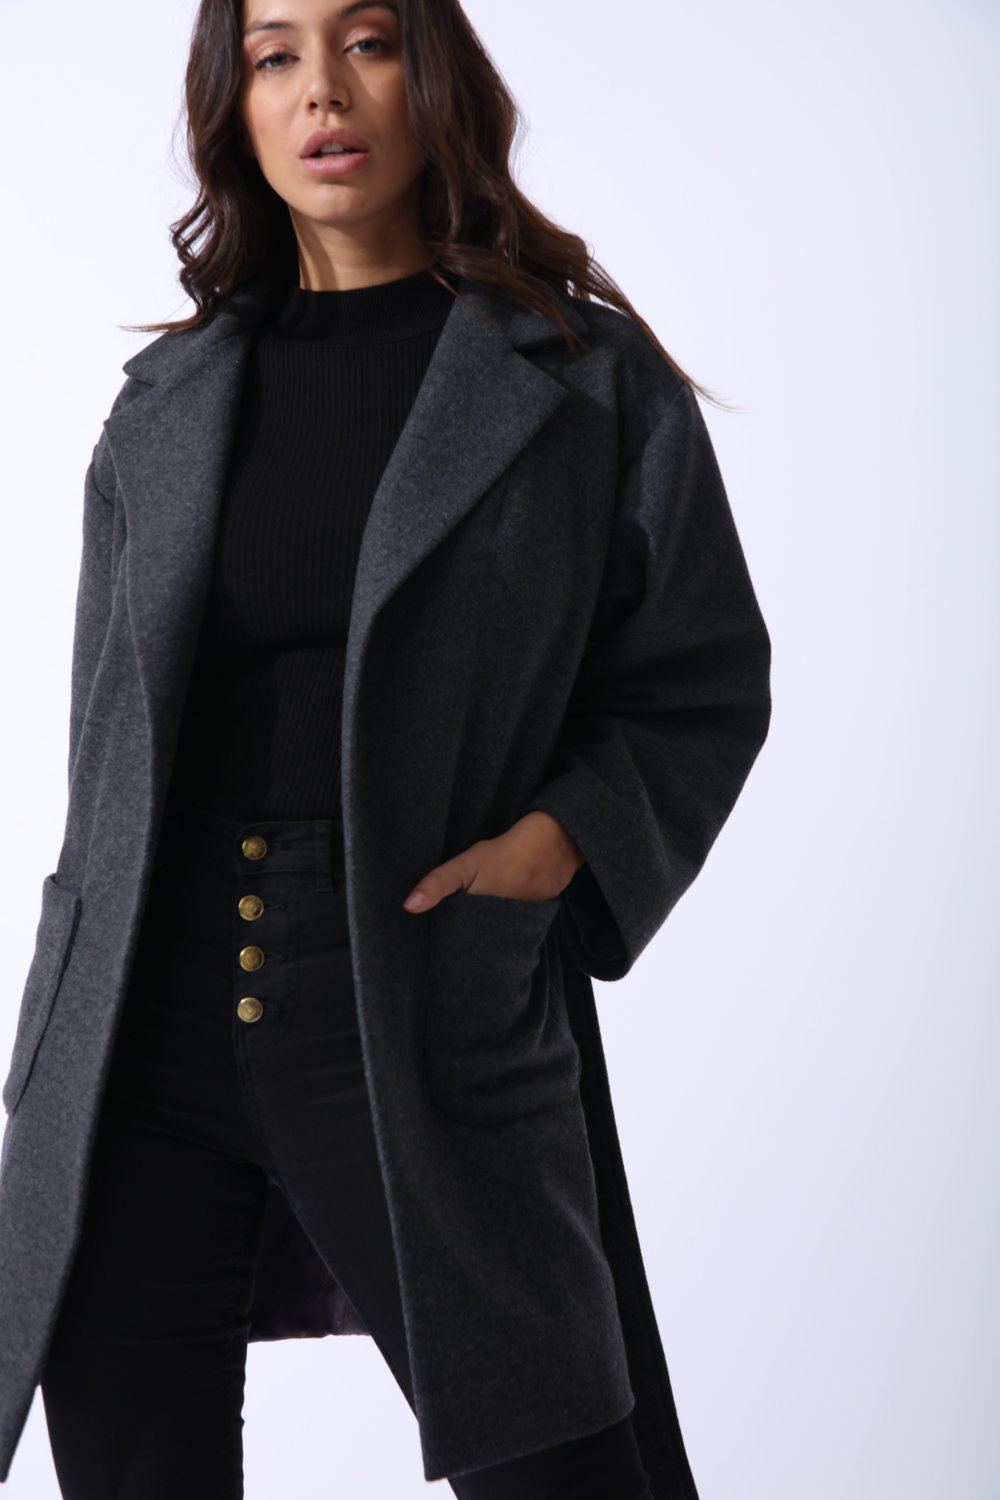 Wool Boyfriend Coat in Grey - CalicoMarket